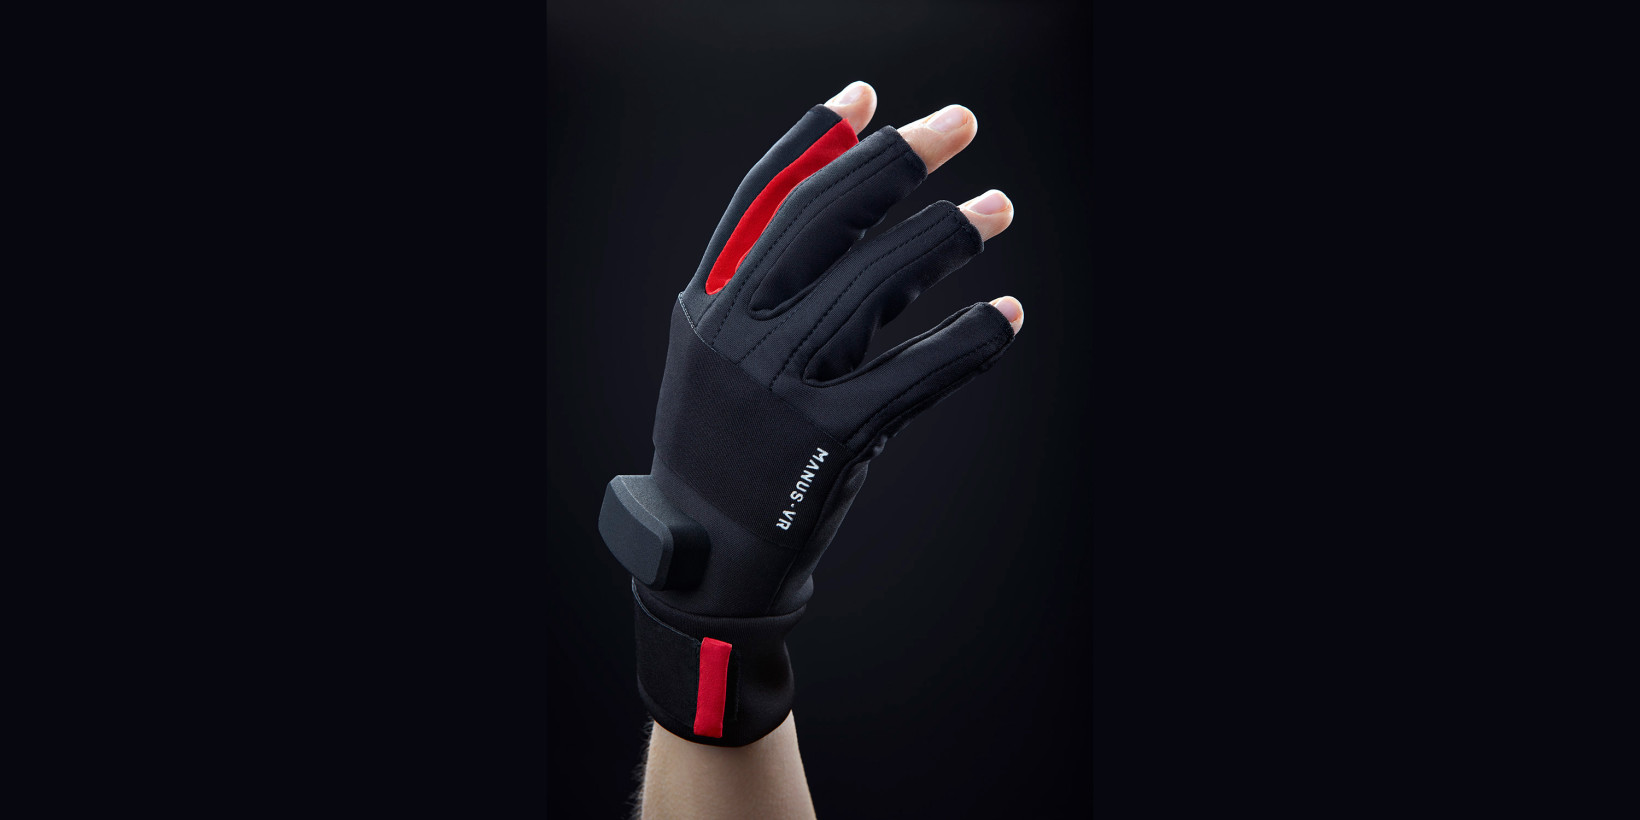 Manus' $250 gloves turn your hands into VR game controllers